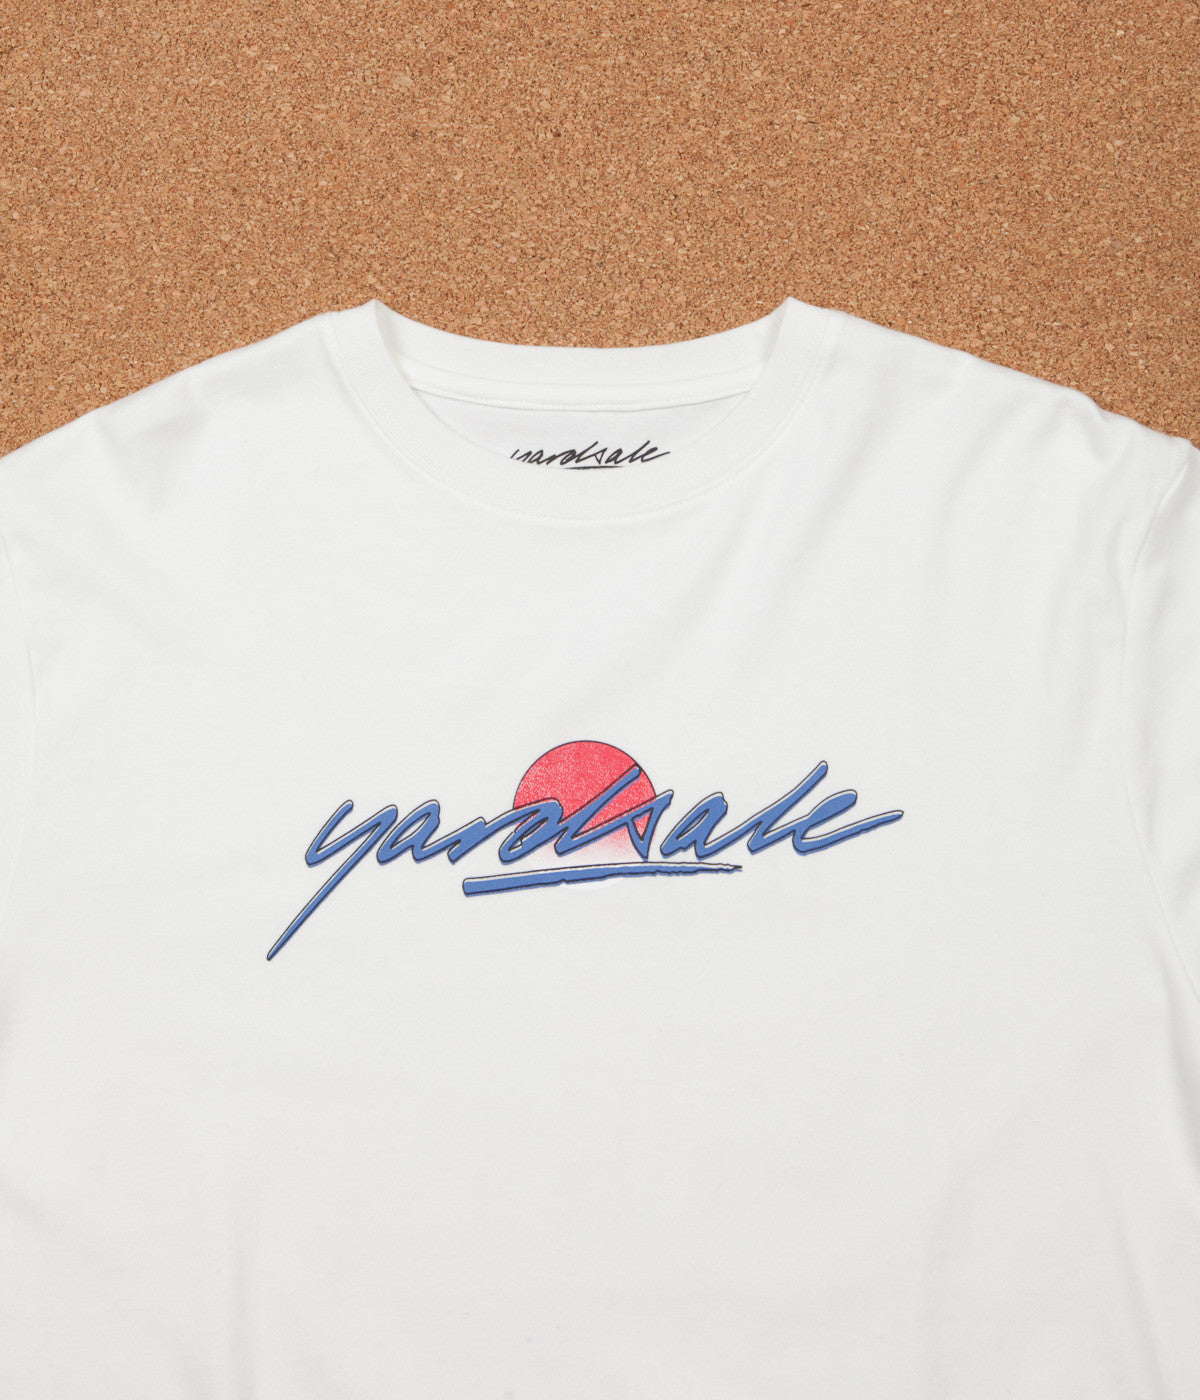 Yardsale Fade Long Sleeve T-Shirt - White